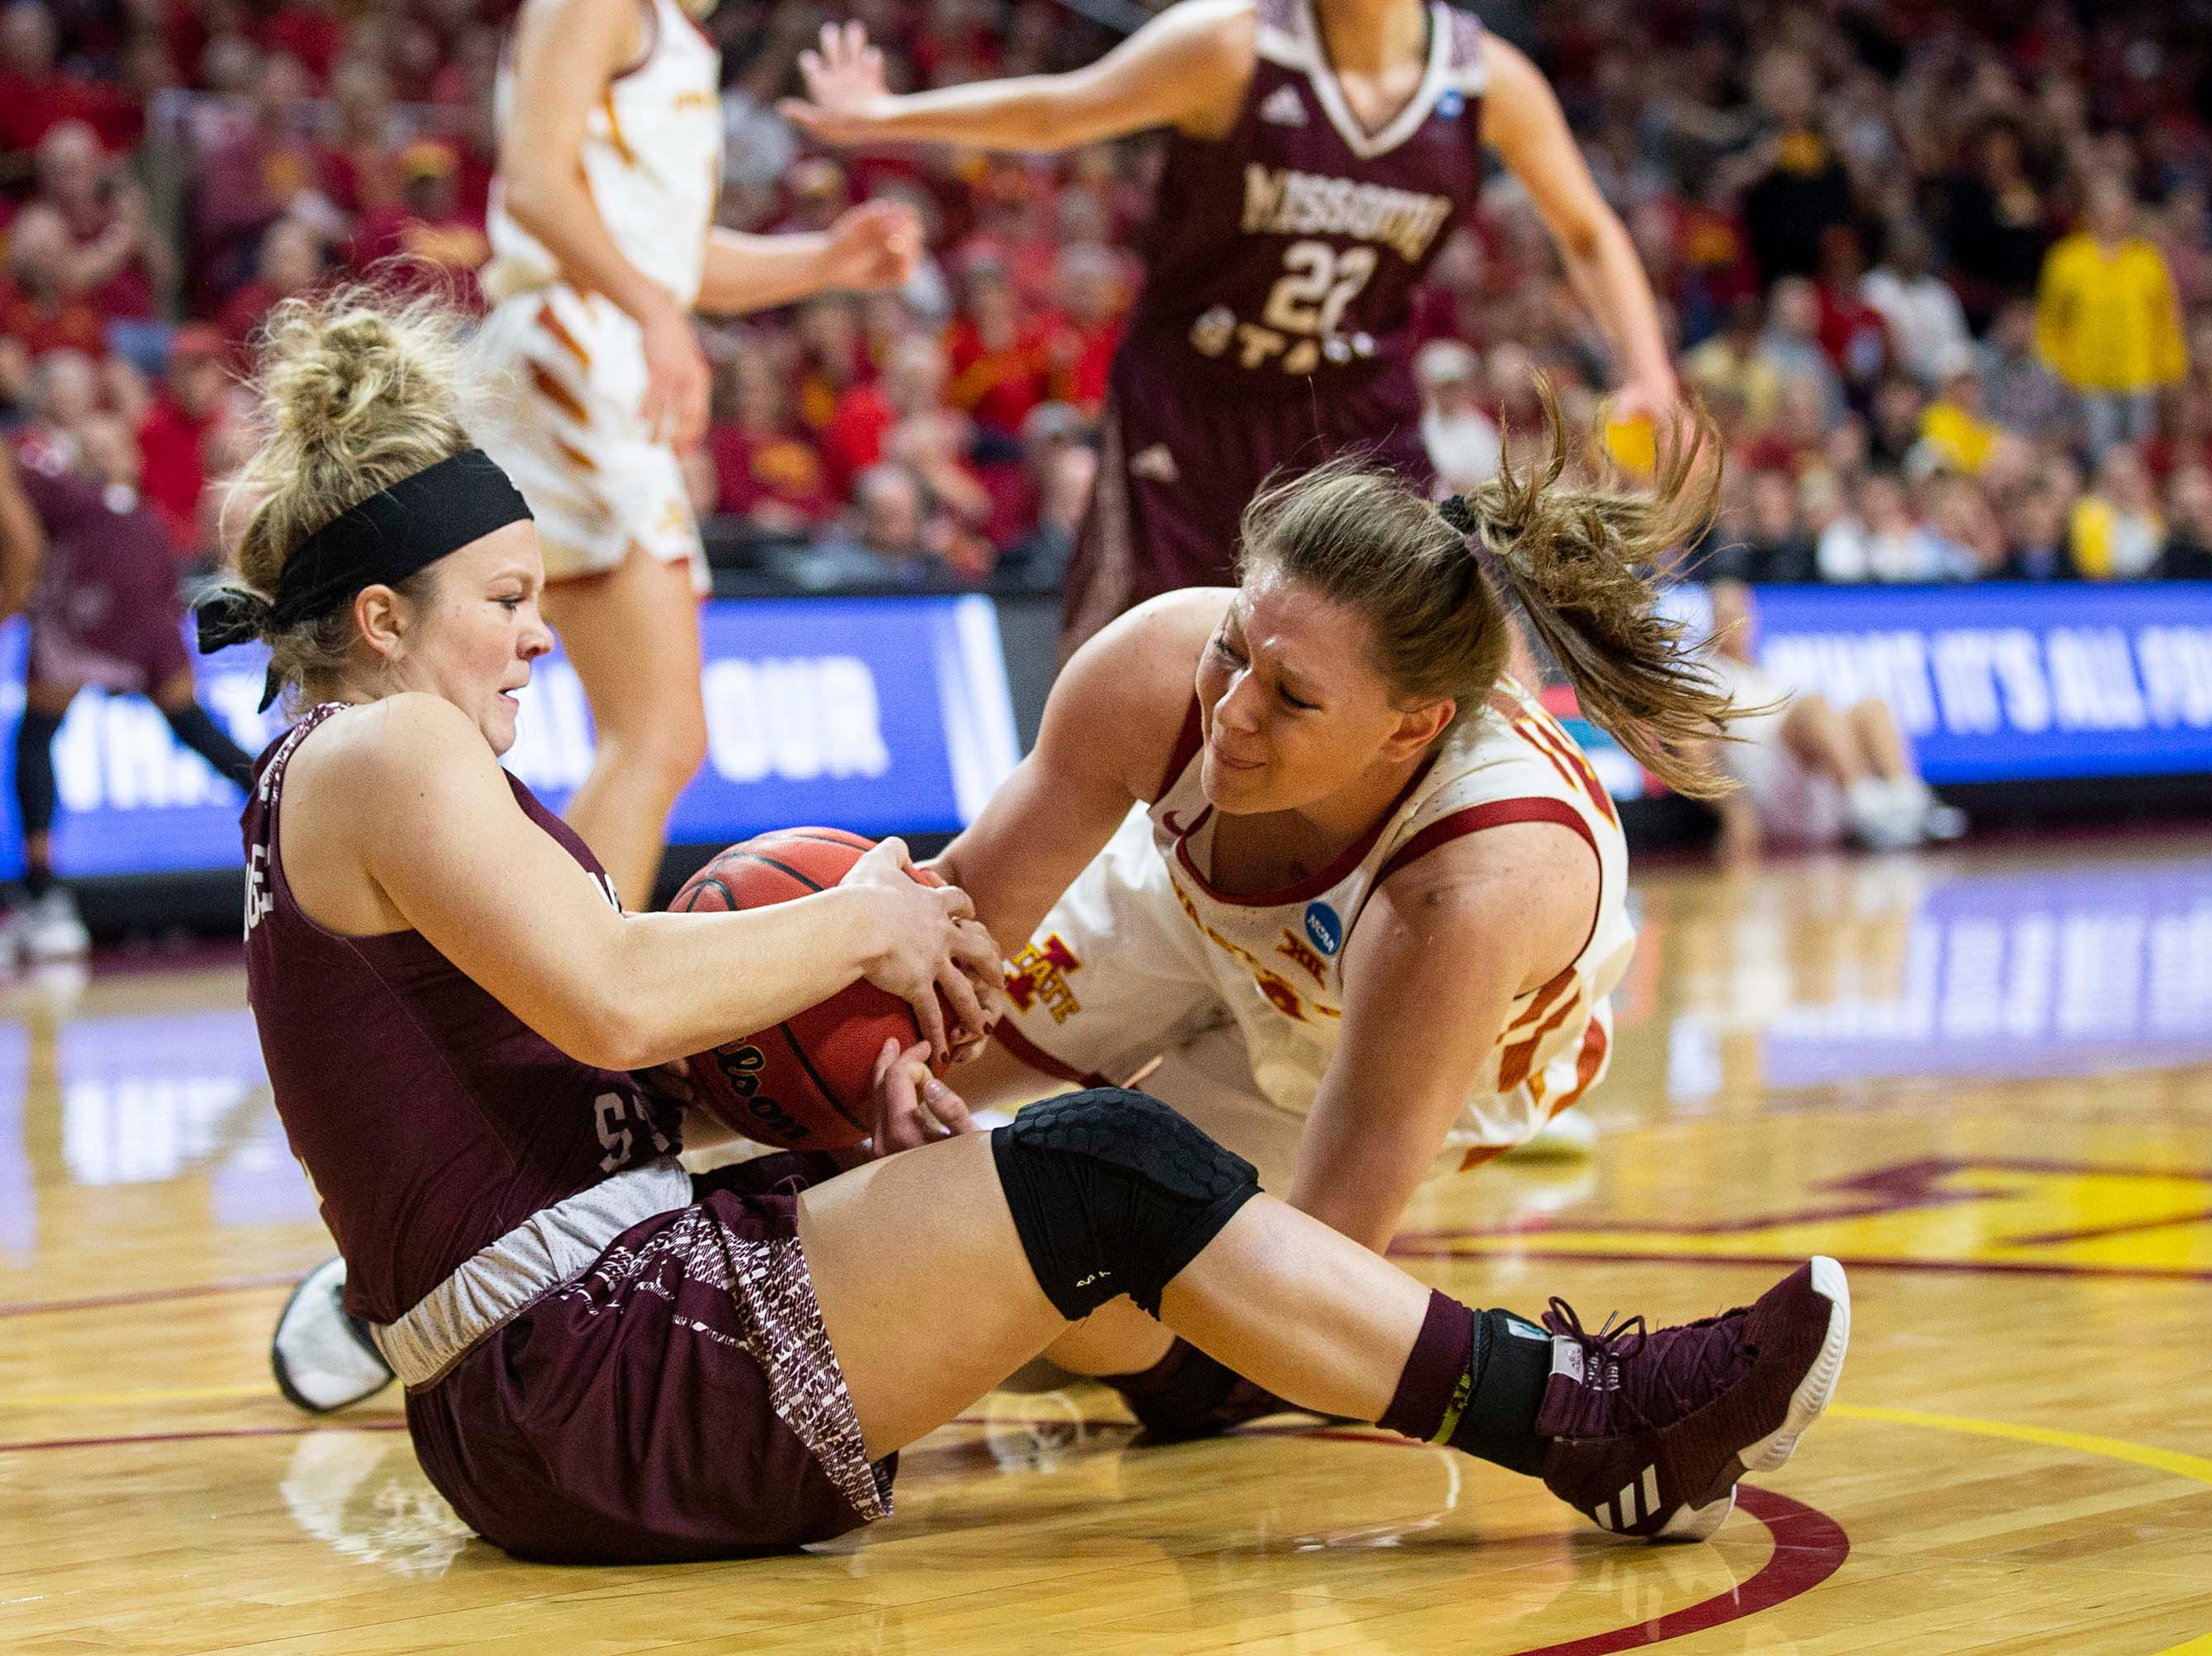 Missouri State's Elle Ruffridge and Iowa State's Ashley Joens fight for a jump ball during the NCAA Tournament second-round match-up between Iowa State and Missouri State on Monday, March 25, 2019, in Hilton Coliseum, in Ames, Iowa.